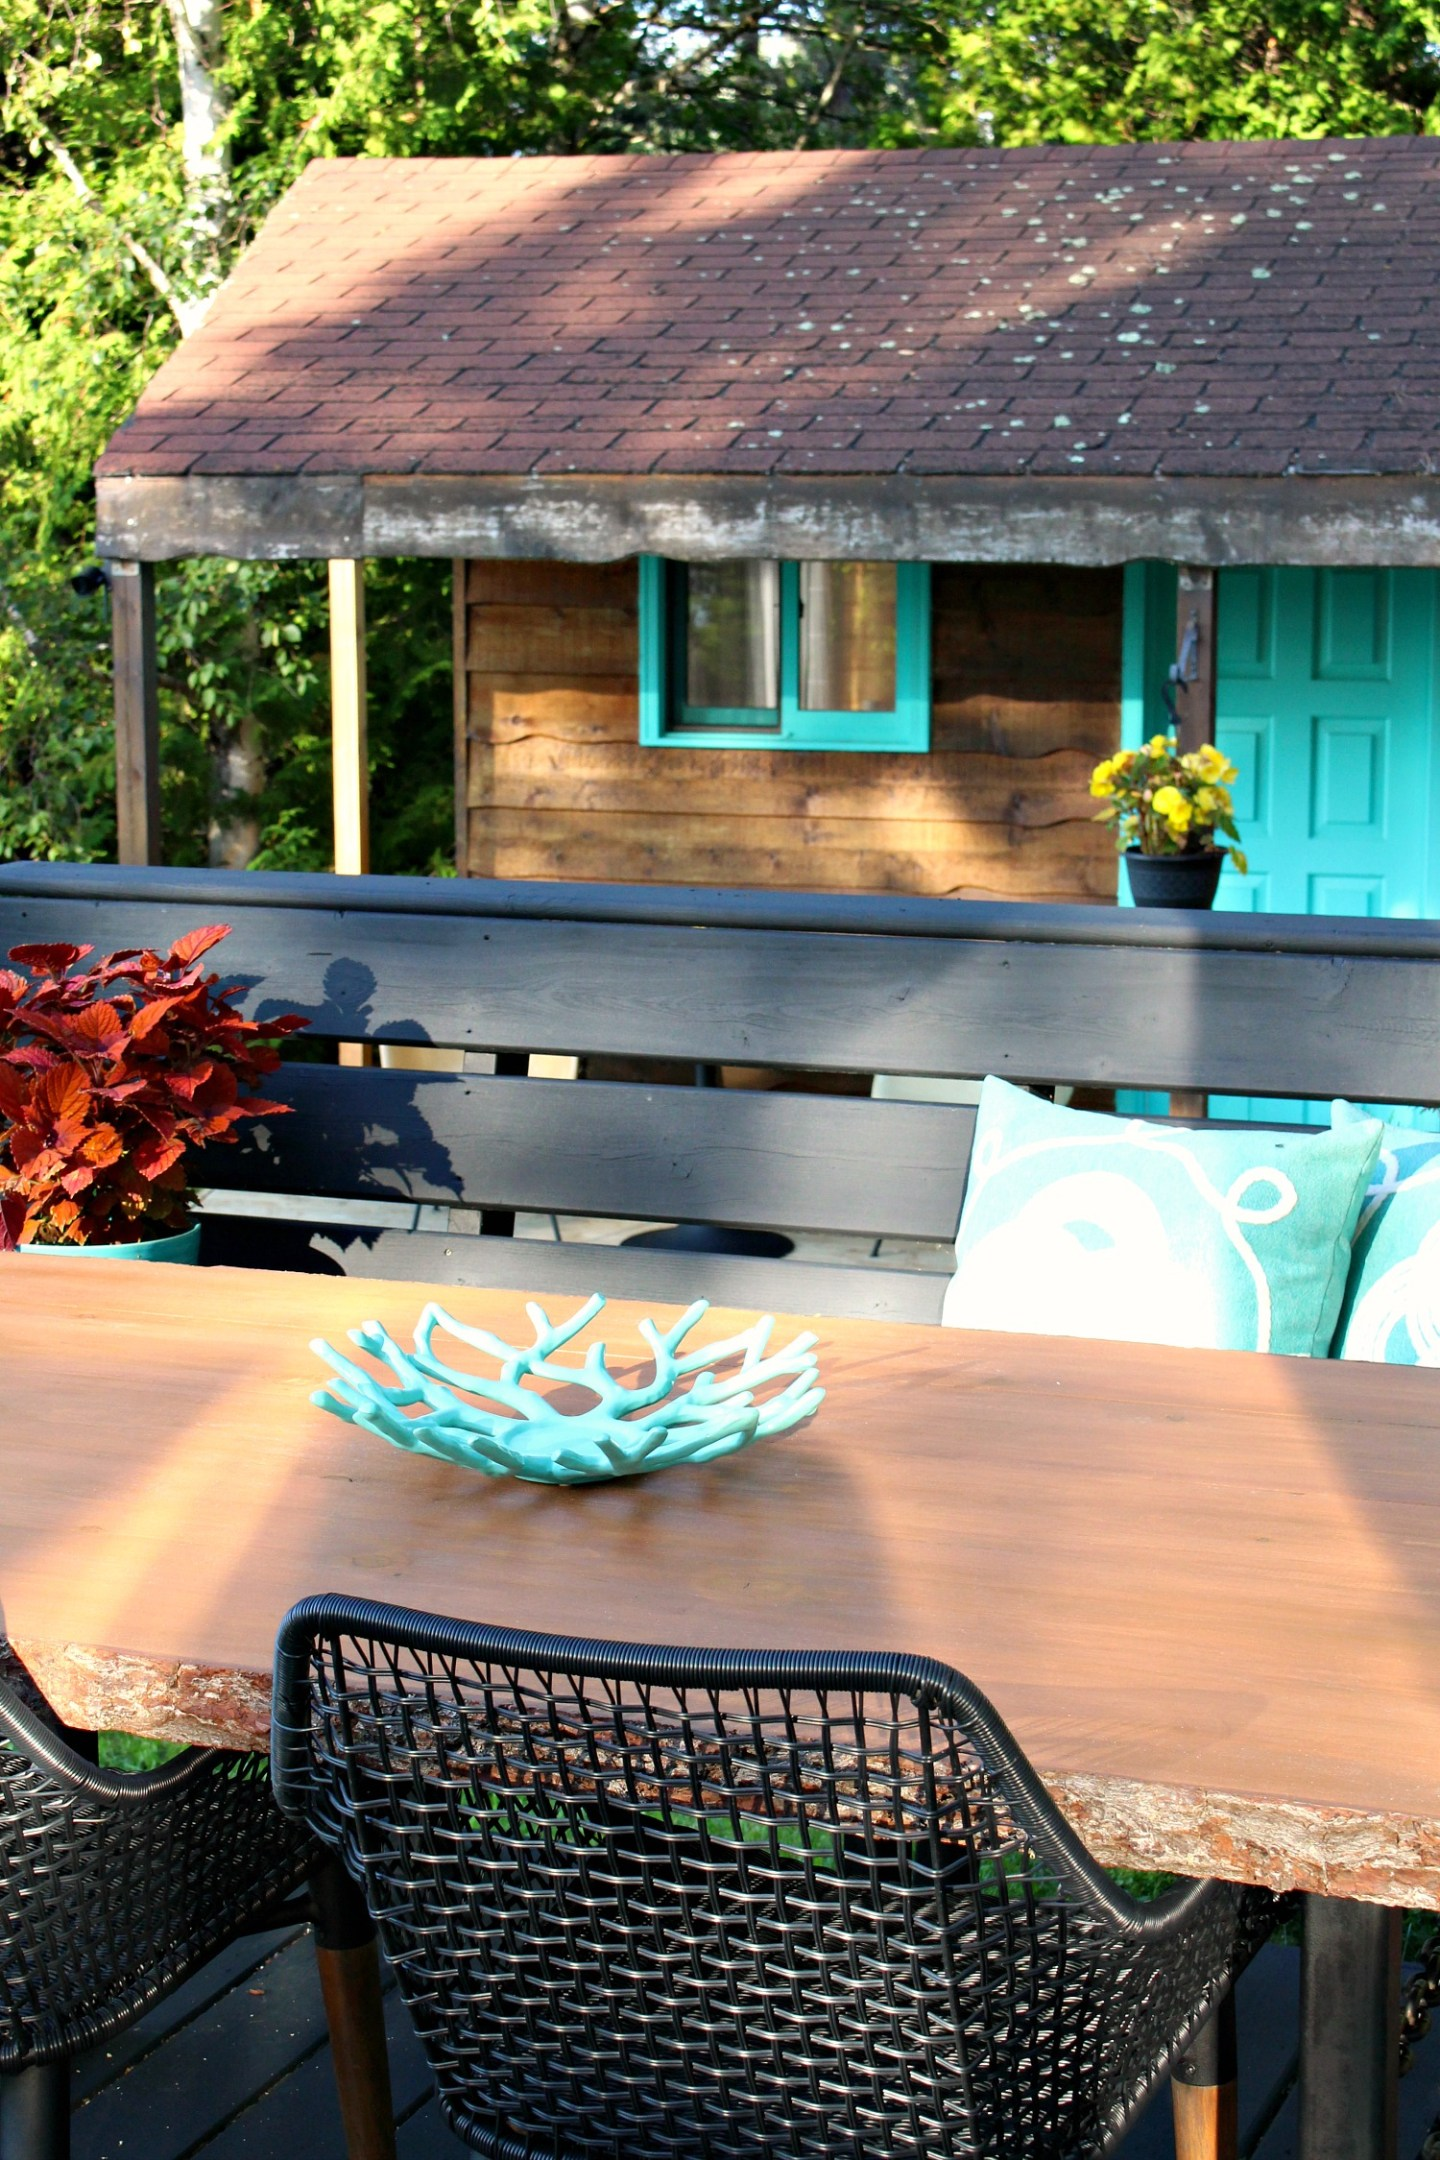 Behr Exterior Stain in Chesnut on Pine Live Edge Table